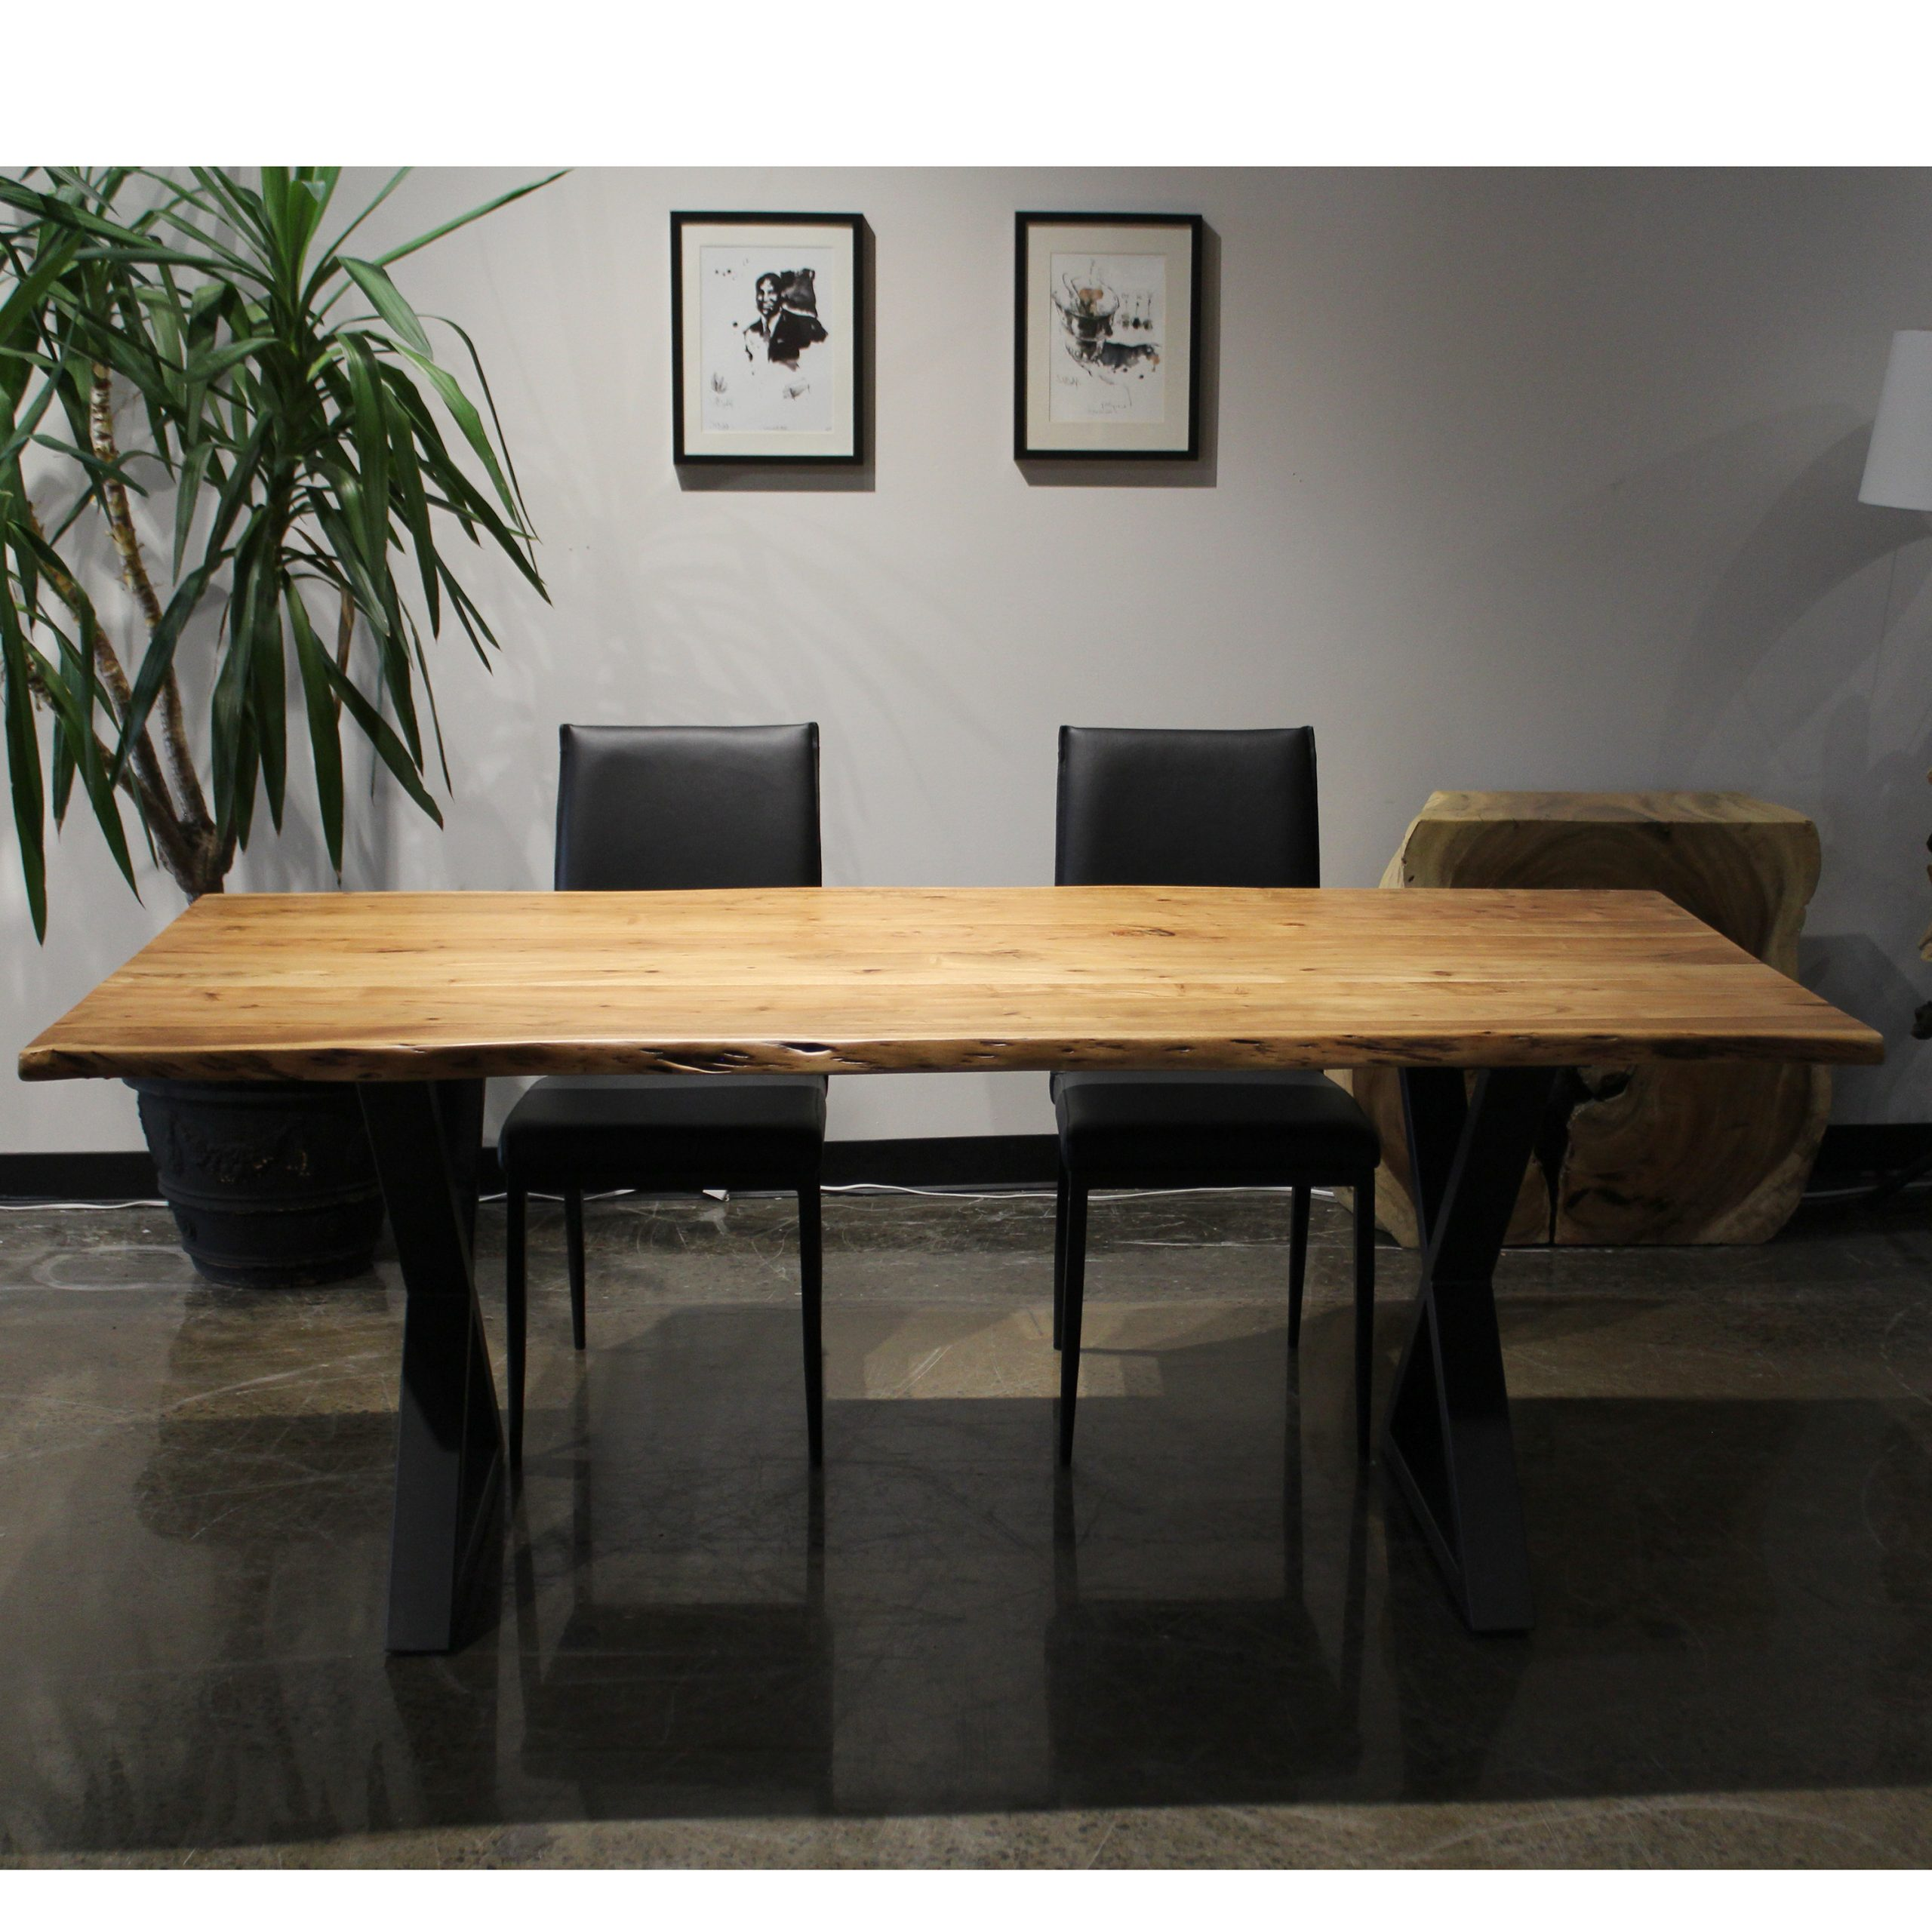 Most Current Acacia Dining Tables With Black Rocket Legs Within Corcoran Walnut Acacia Dining Table – 80 In – Black Metal U Legs (View 18 of 30)